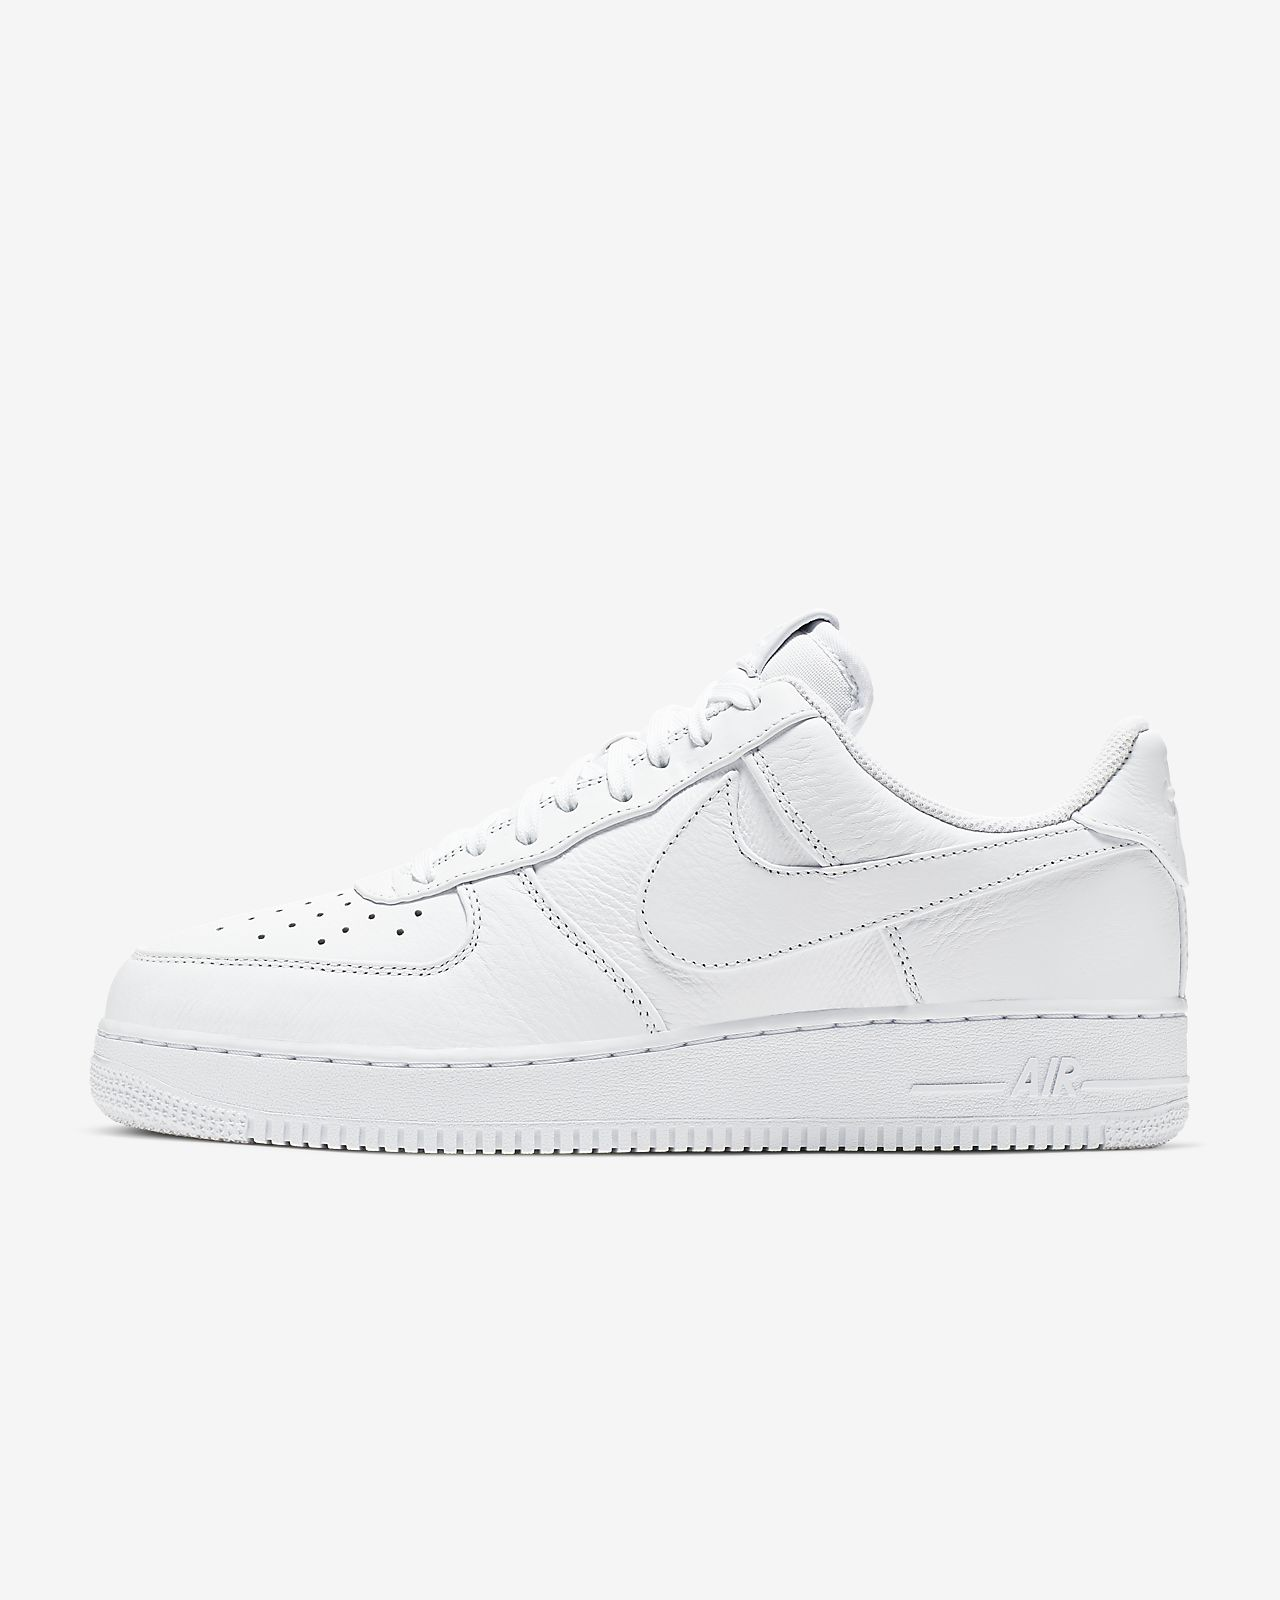 Nike Air Force 1 '07 Premium 2 Men's Shoe